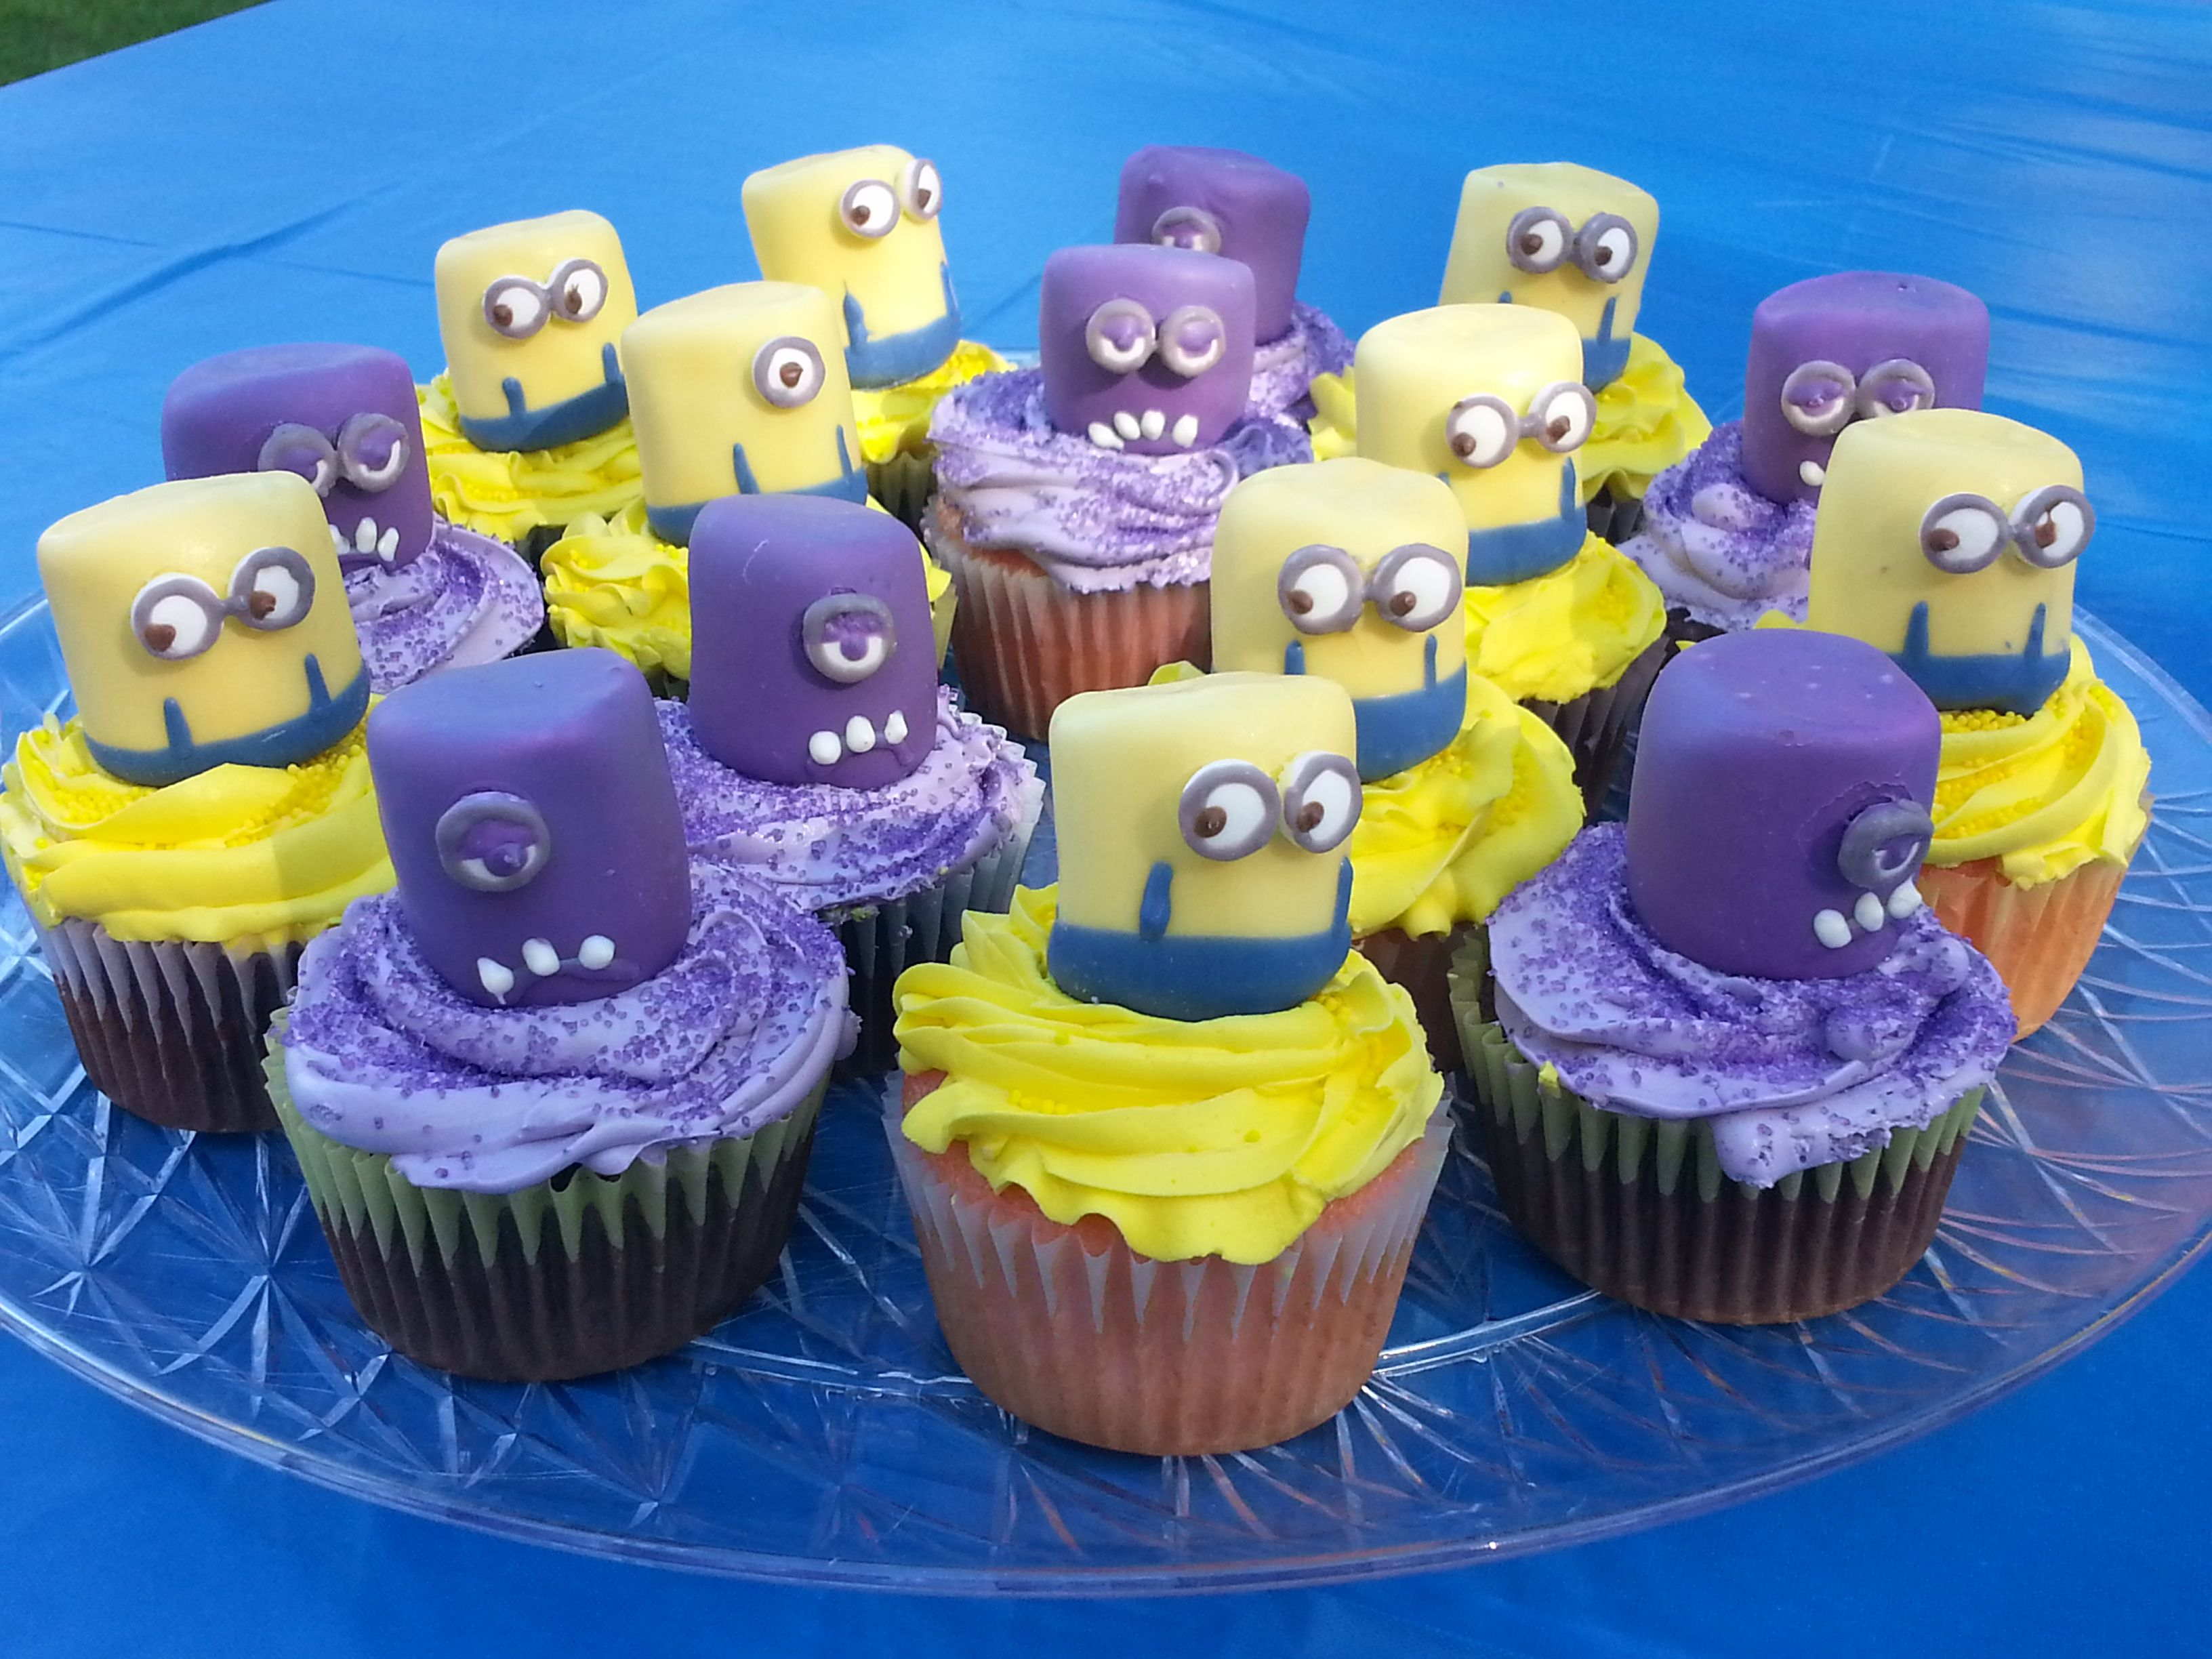 Despicable Me birthday cupcakes for my little Minion